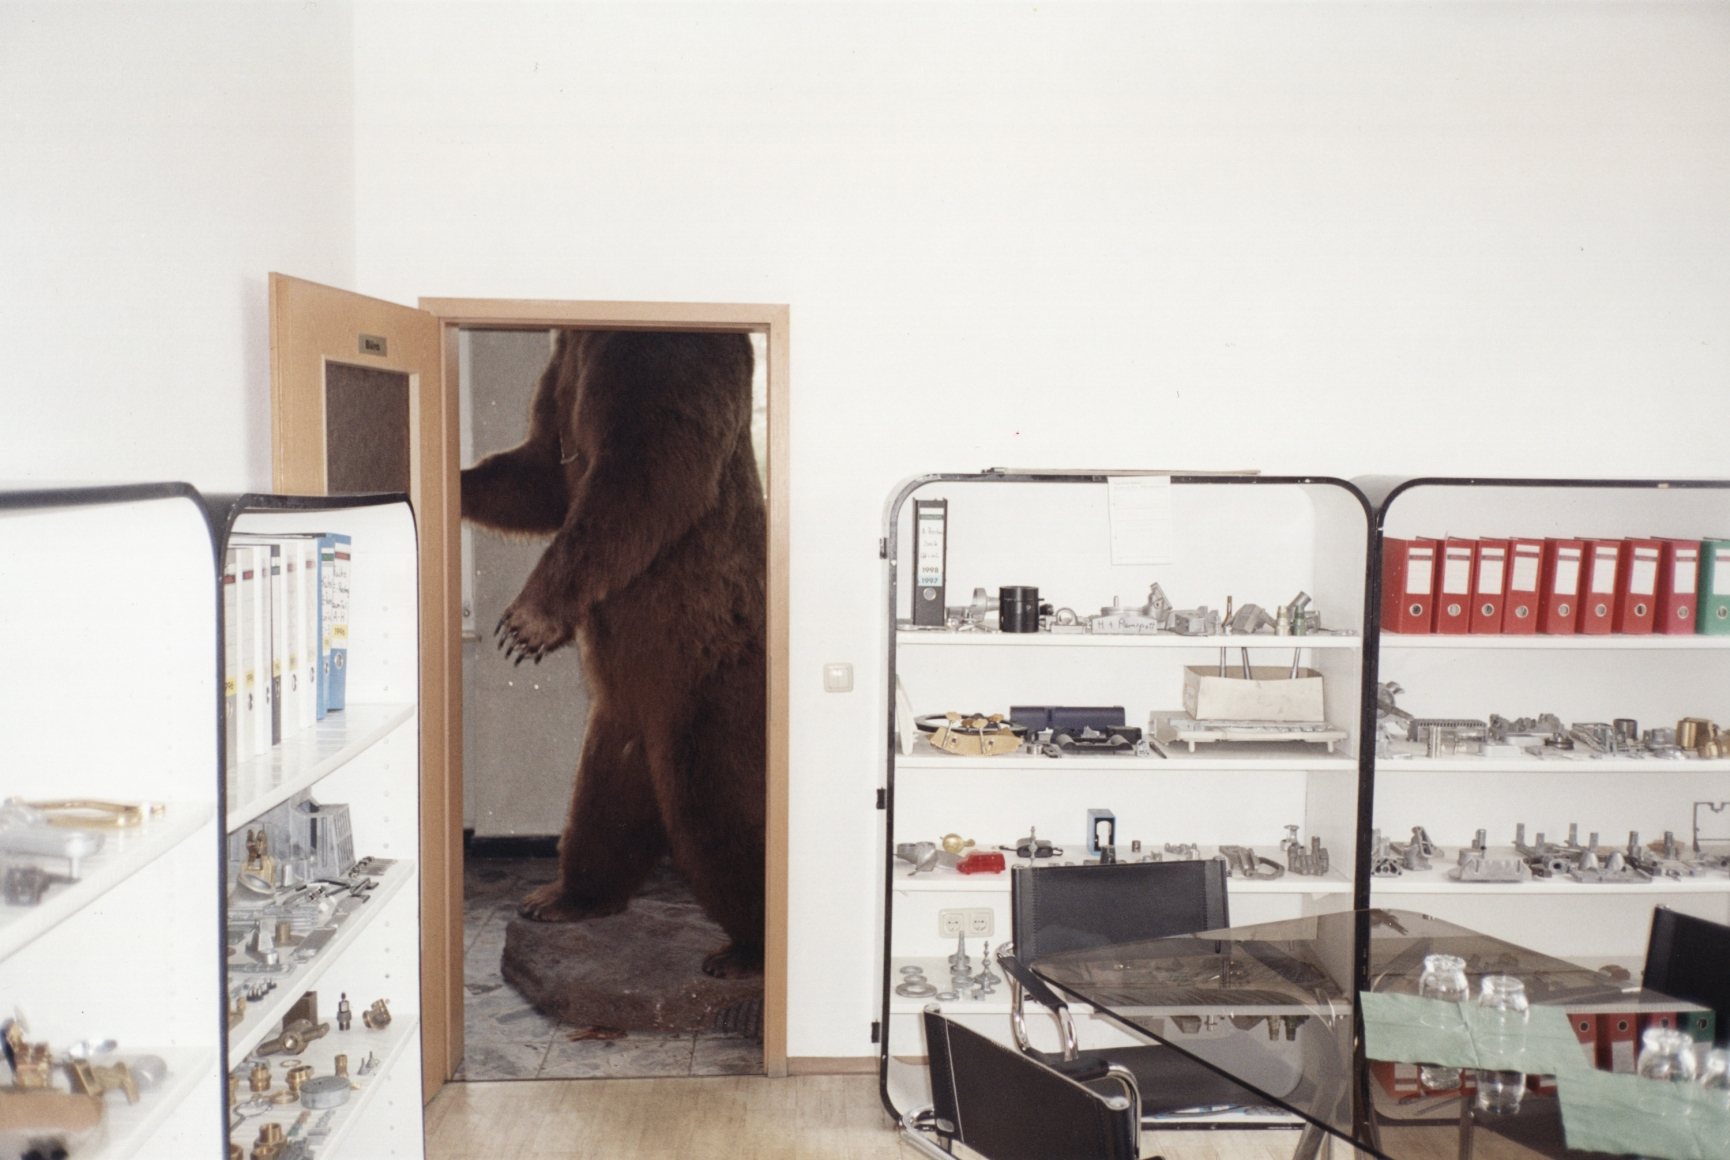 JUERGEN TELLER, Brown Bear, Bubenreuth, Germany, 2002